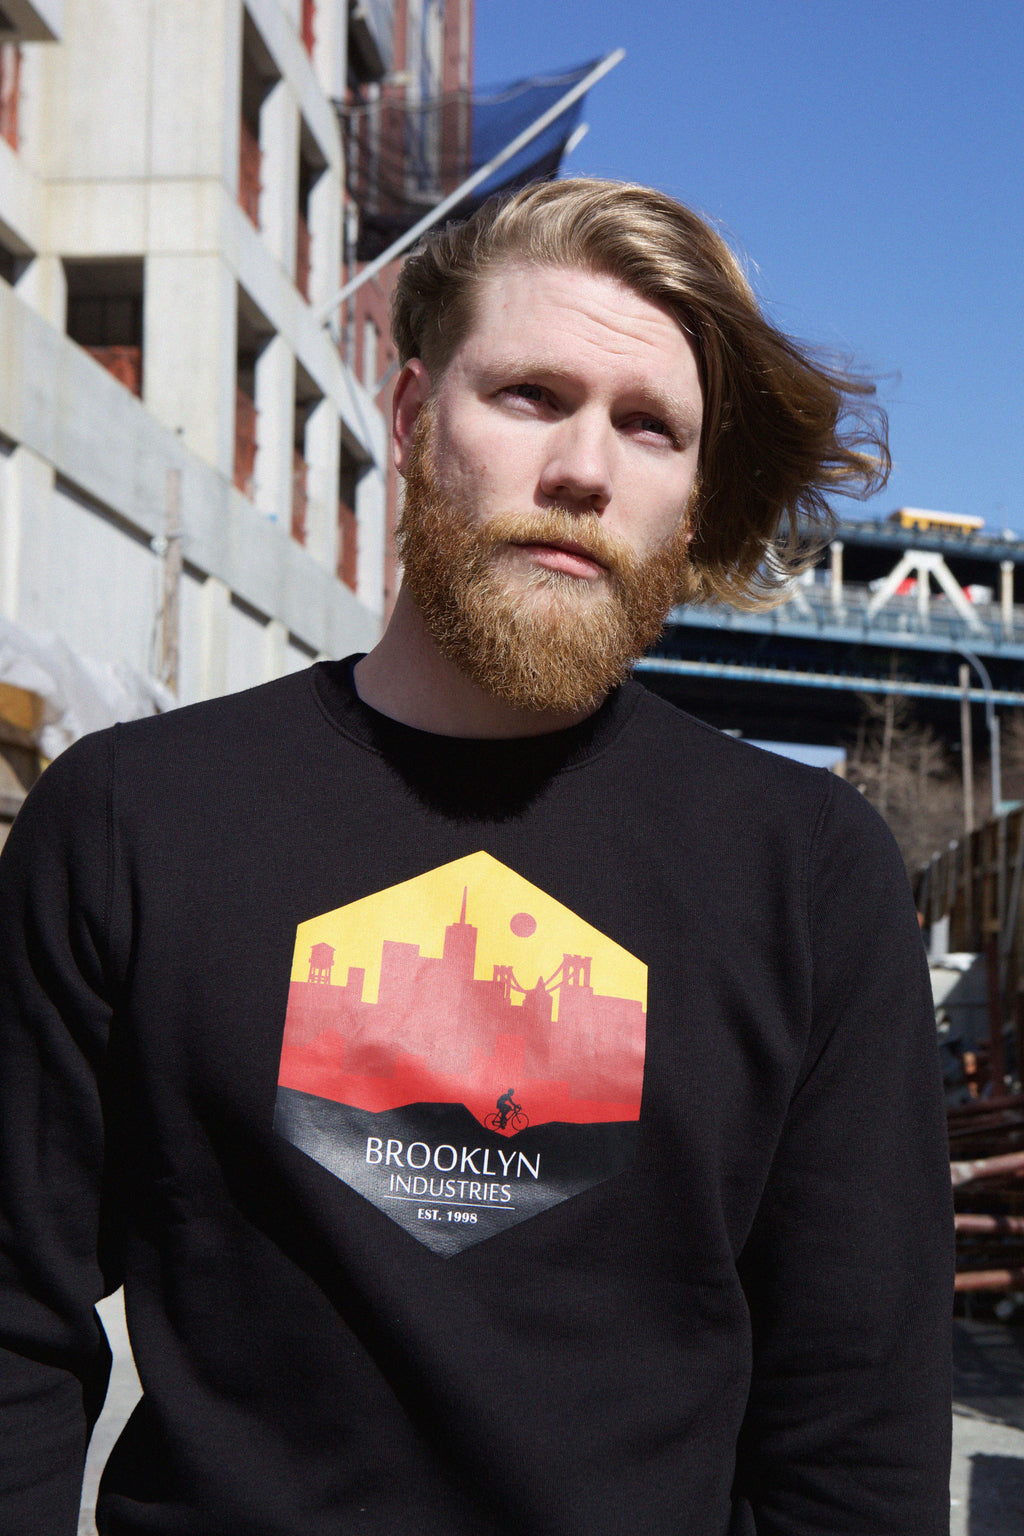 Portrait of man wearing black sweatshirt with bridge in background.  Hexagon print of skyline with words Brooklyn Industries below.